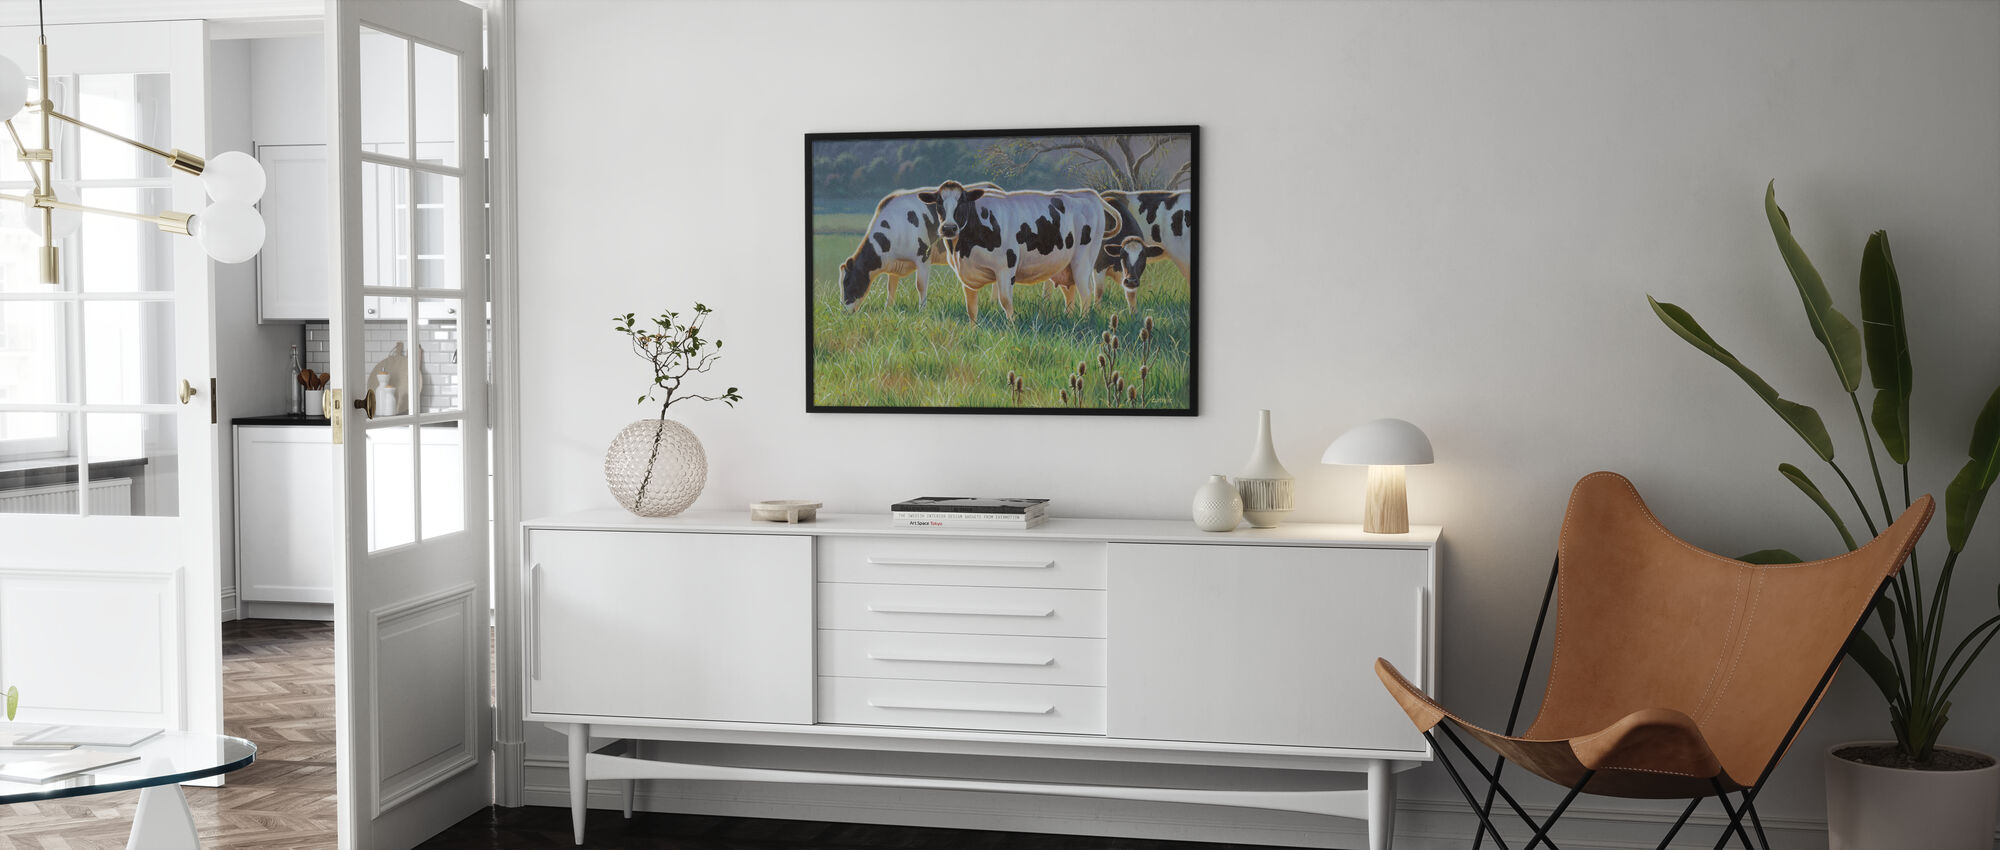 Cows - Poster - Living Room